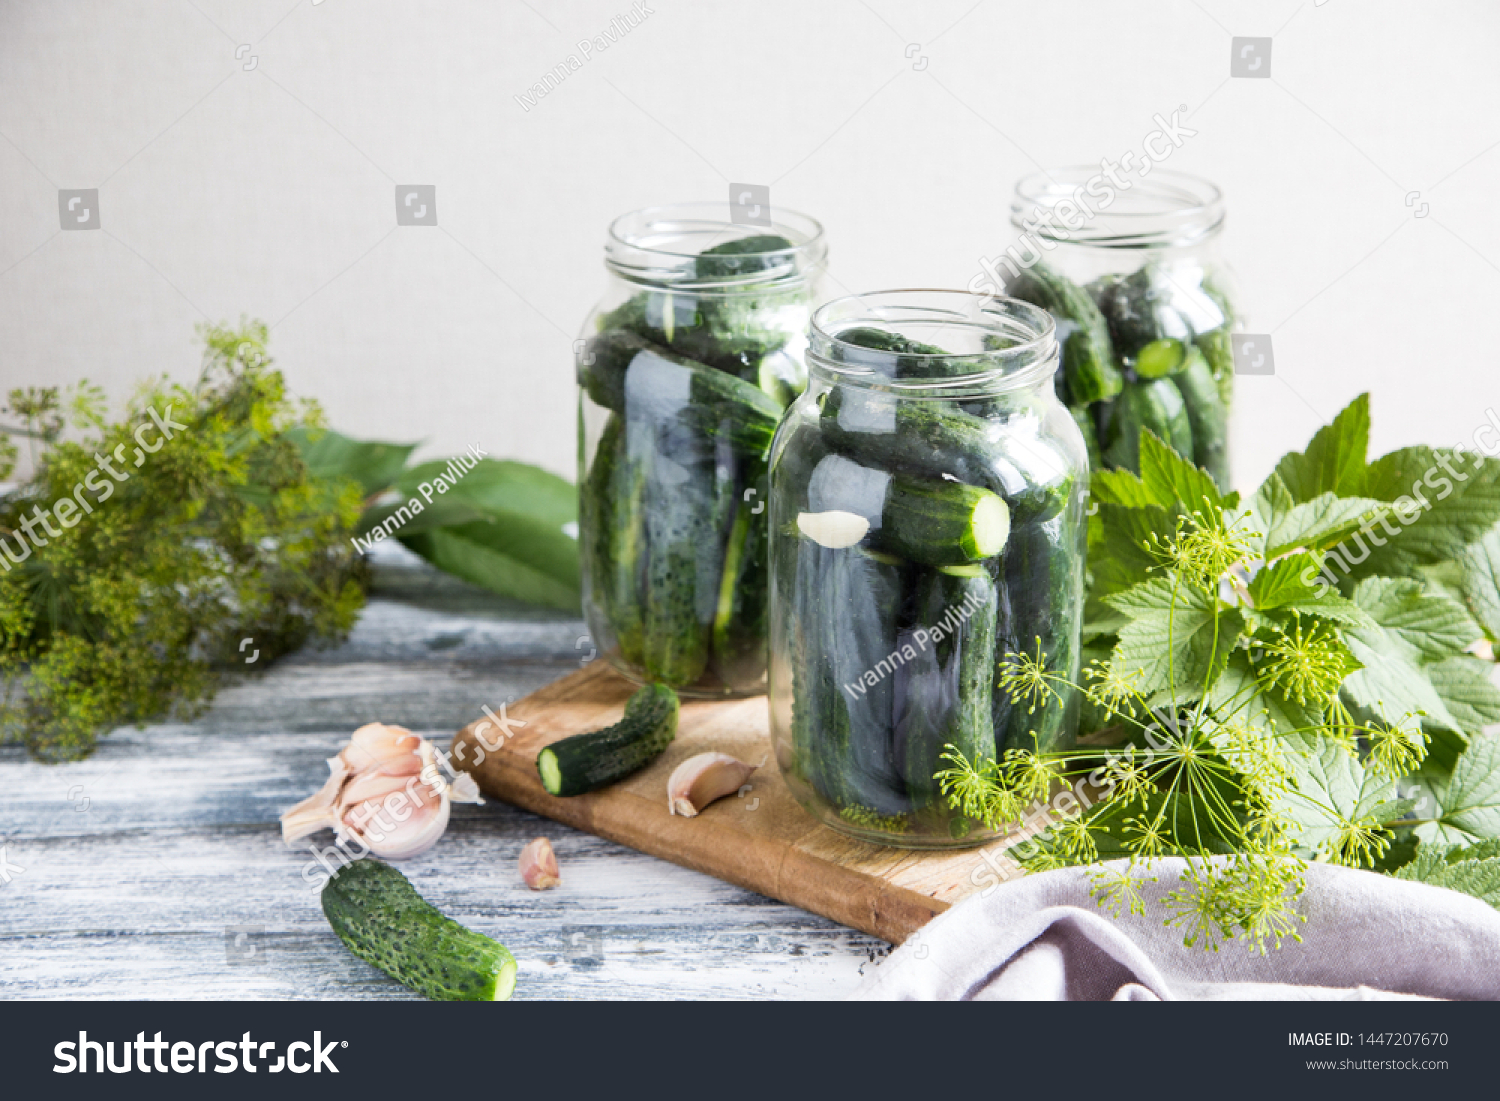 Cucumbers Spices Herbs Preservation Jar Homemade Stock Image